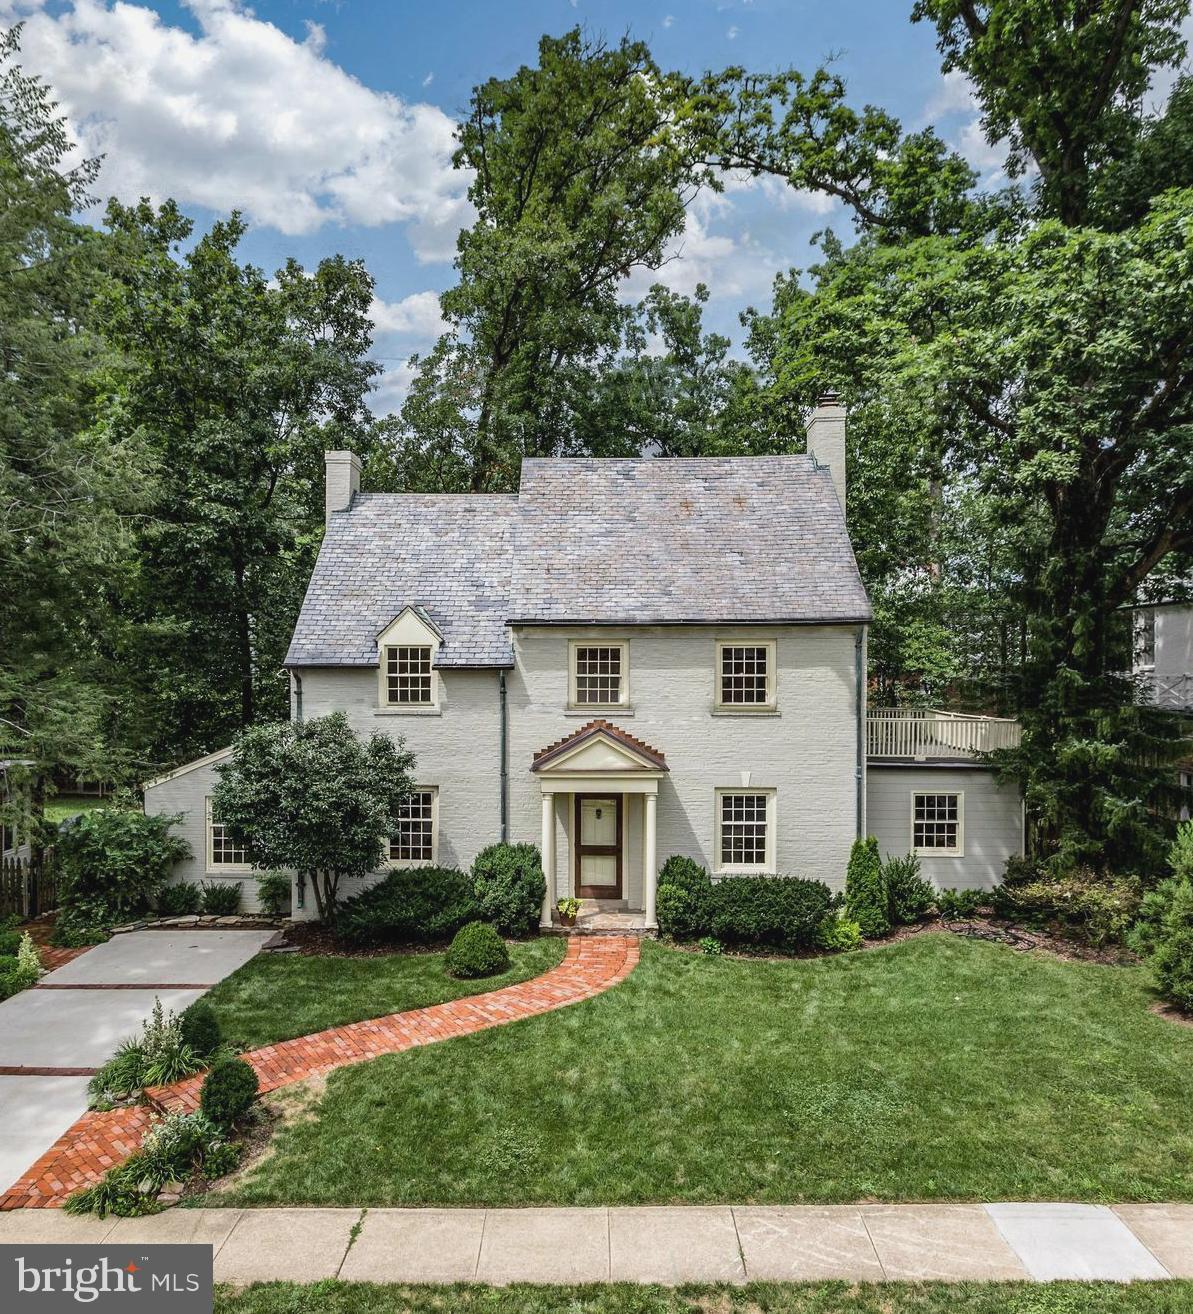 Exquisite center-hall Colonial on sought-after street in Belle Haven. State-of-the-art remodeled kitchen & DR w/ Wolf & Sub-Zero s & handcrafted cabinetry, family rm & study w/ heated flrs, LR w/ fireplace. MBR w/ w-i closet, BA & door to deck, 2nd upper lvl BR w/ beamed ceiling, deluxe BA w/ claw-foot tub. Finished walk-out LL w/ rec rm, BA & storage. New patio flat backyard. Approx 3400 Sq Ft